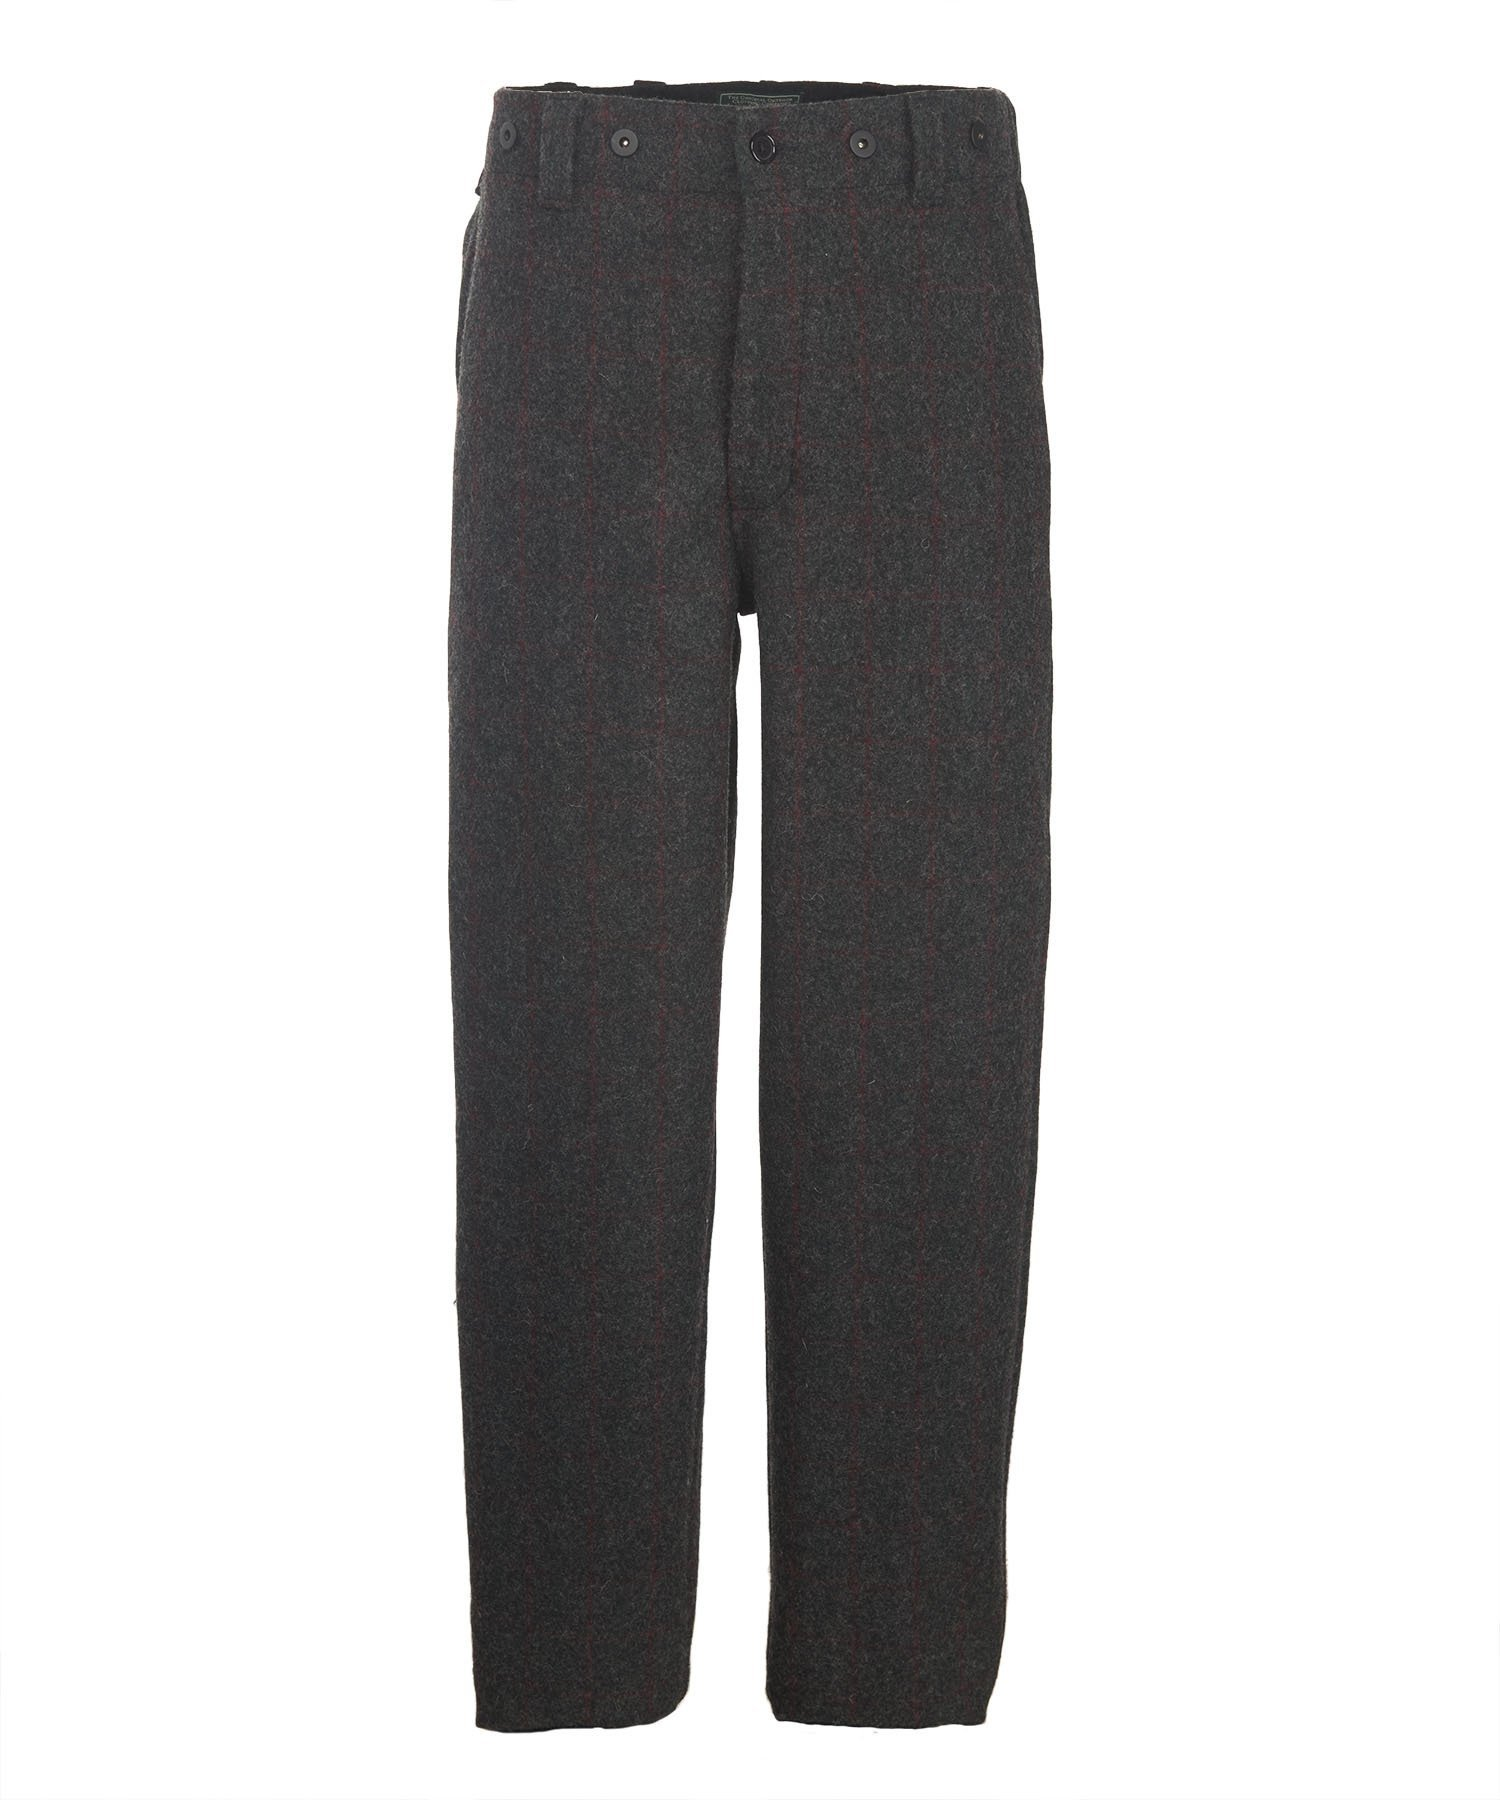 Woolrich Men's Malone Wool Pant, No Color, 40x36